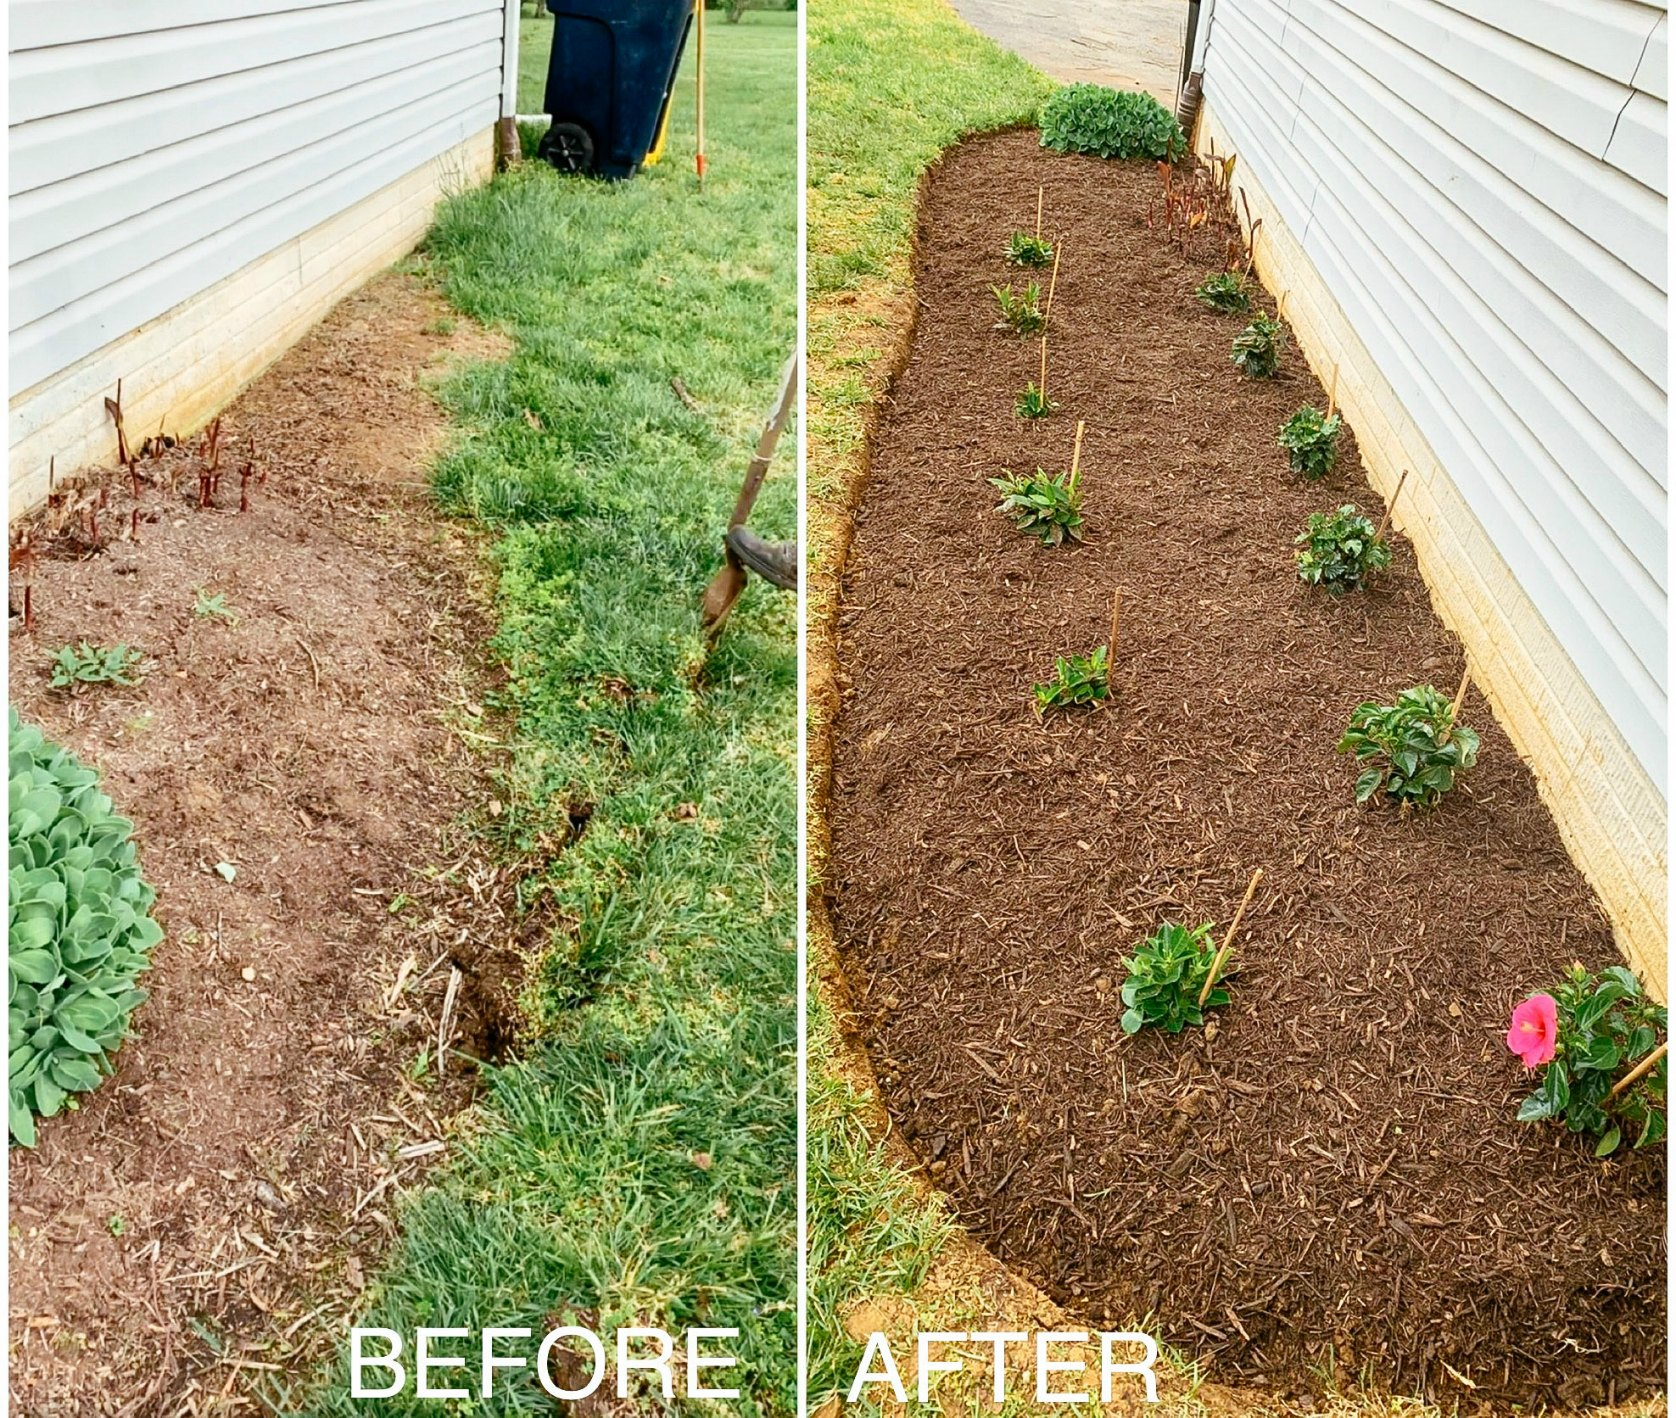 How to build your own flower bed 1 | Flower Bed Design by popular Michigan life and style blog, Dreaming Loud: before and after image of a flower bed.